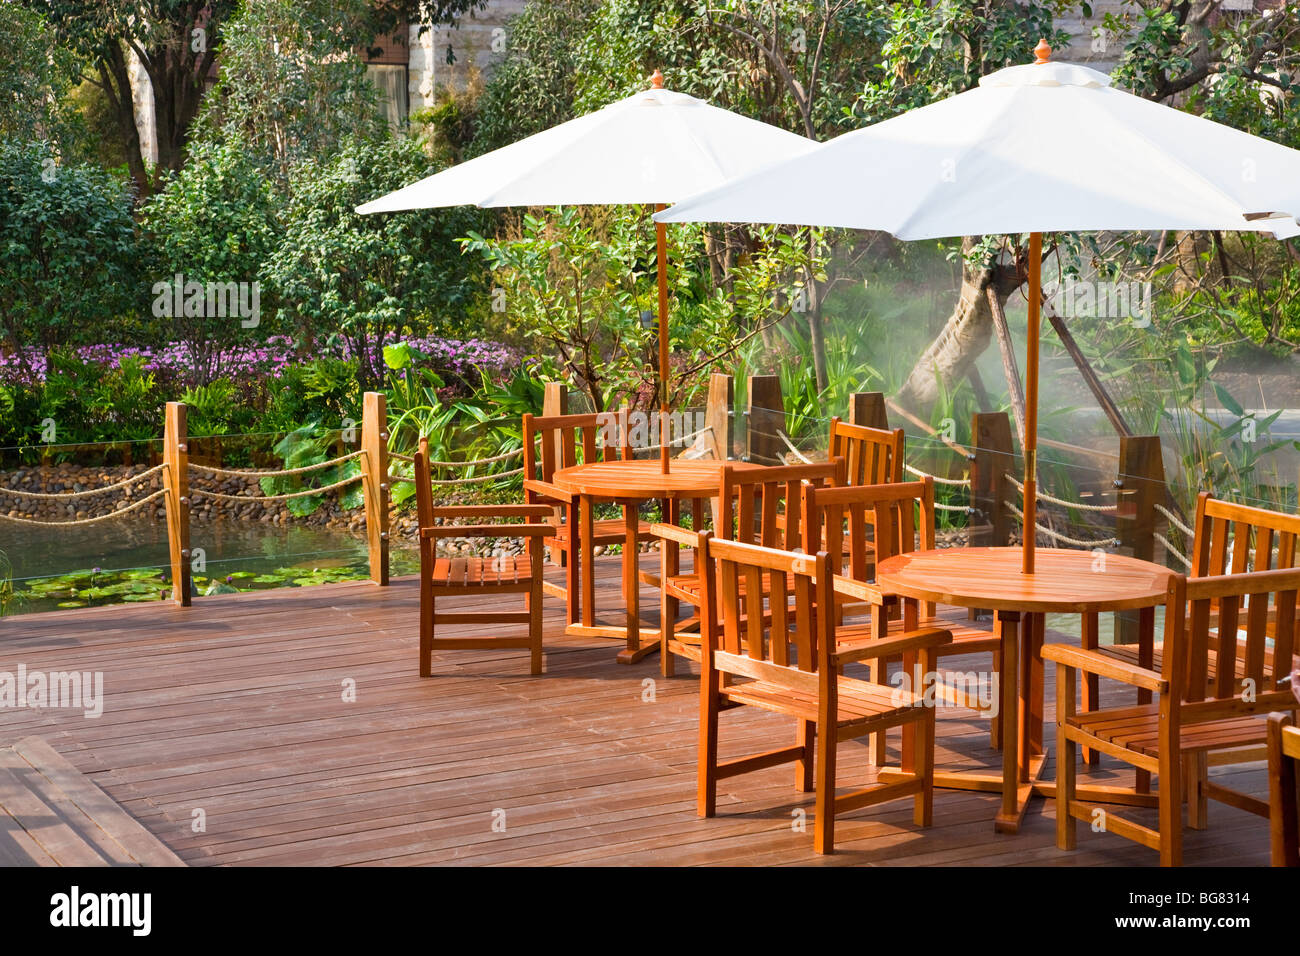 House patio with table and chairs under umbrella Stock Photo